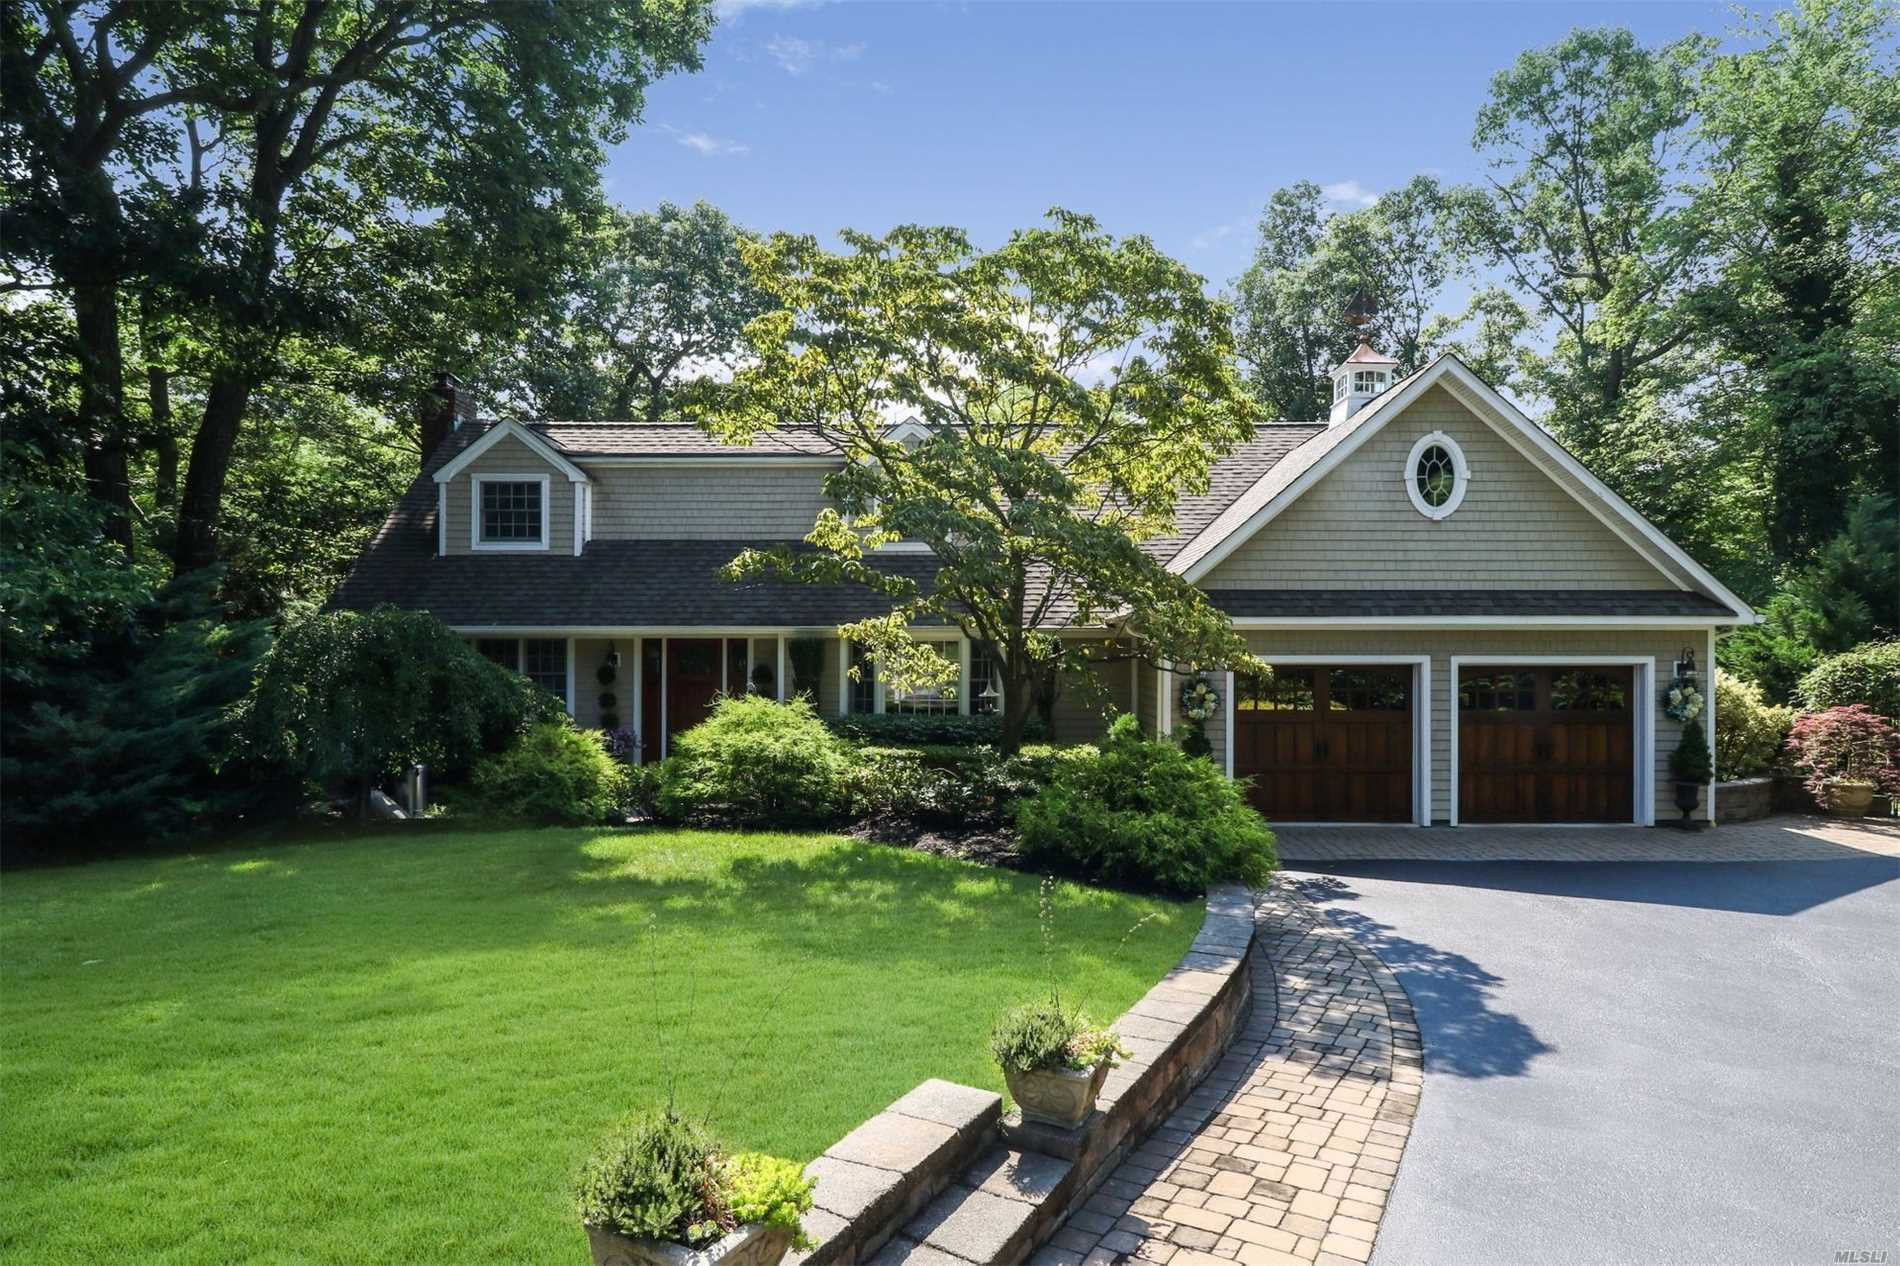 A Beautiful Getaway Right At Home! Stunning 5 Br, 3 Bth, Ctre Hall Colonial In Vanderbilt Section, Little Neck Peninsula. 0.5 Acre. Winter Water Views! Quiet Cul-De-Sac. All Updated In 2008 W/High End Upgrades. Gourmet Kit W/Granite/Ss Appl. Marble Baths. Lovely Mstr Suite W/Mahogany Balcony & Wic. Wood Floors. Custom Moldings. Emtek Hardware. Led Lighting. 200 Amps Elec Syst. Igs. Dream Backyard, Bi-Level Patios, Pavilion, Fab Waterfall, Hot Tub, Custom Shed. Prof Lndscaped. Near Centerport Beach.